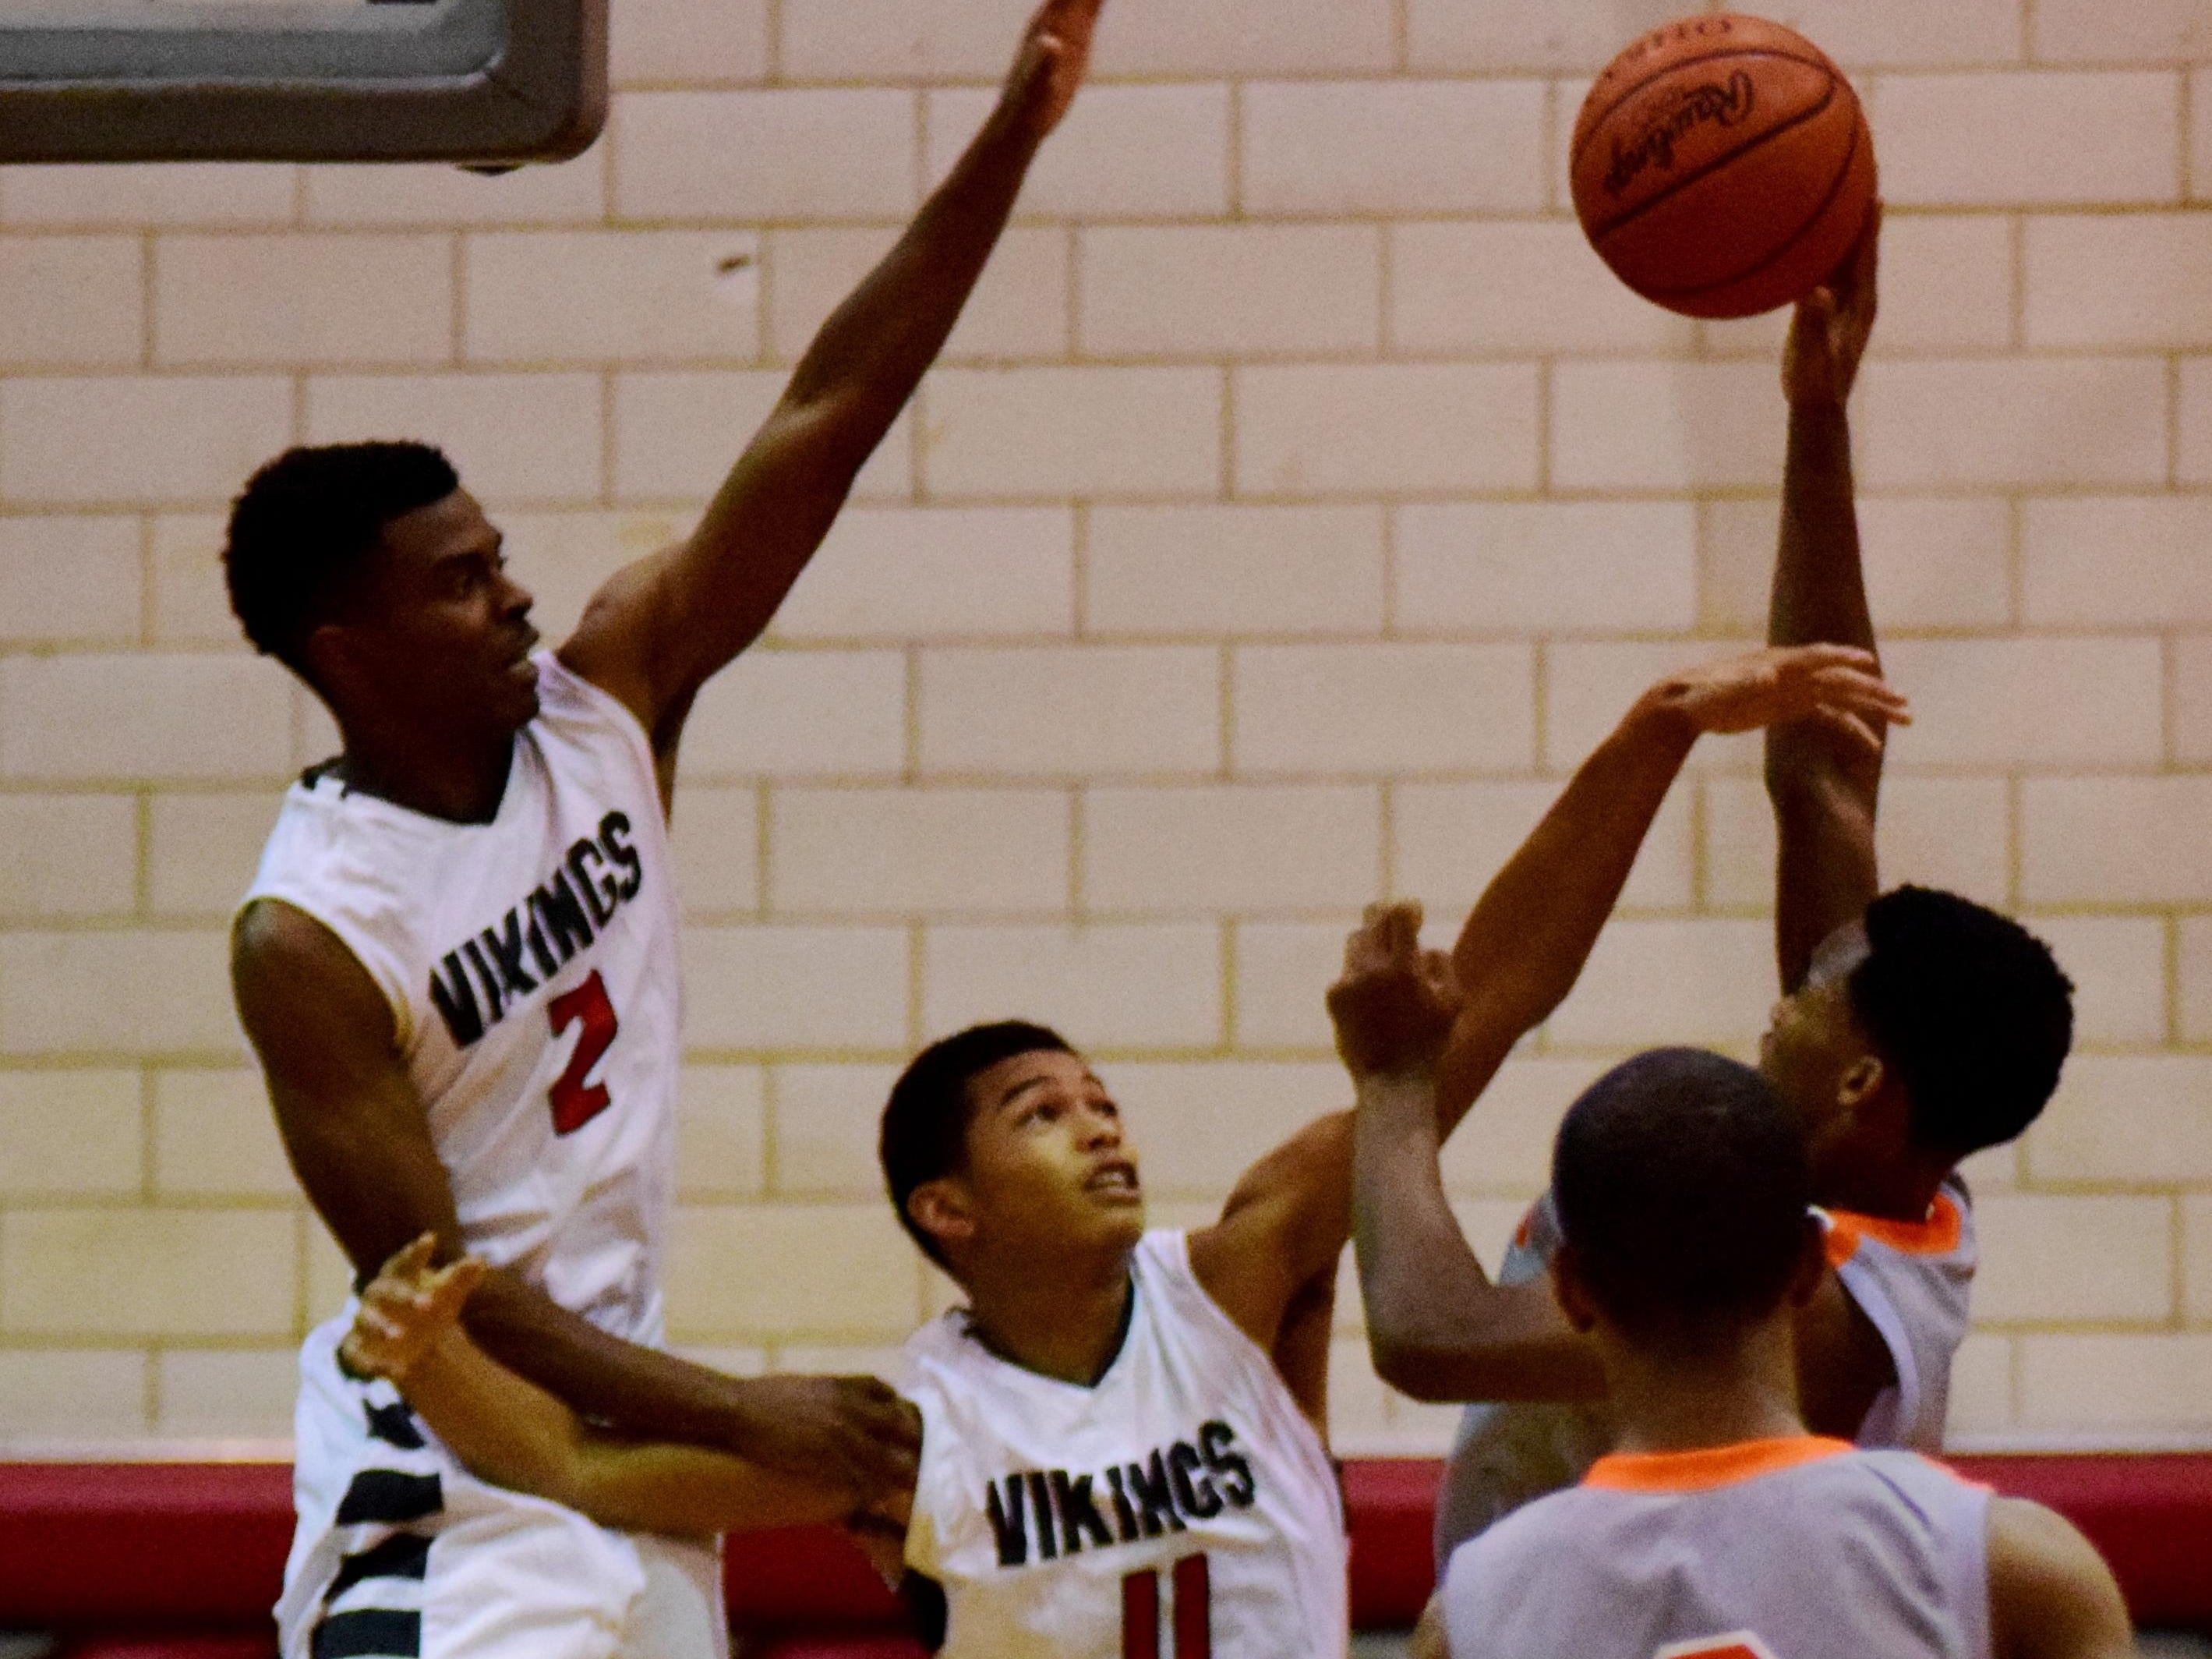 Princeton's Justin Newman, No. 11, attempts to block a shot against Withrow last season.